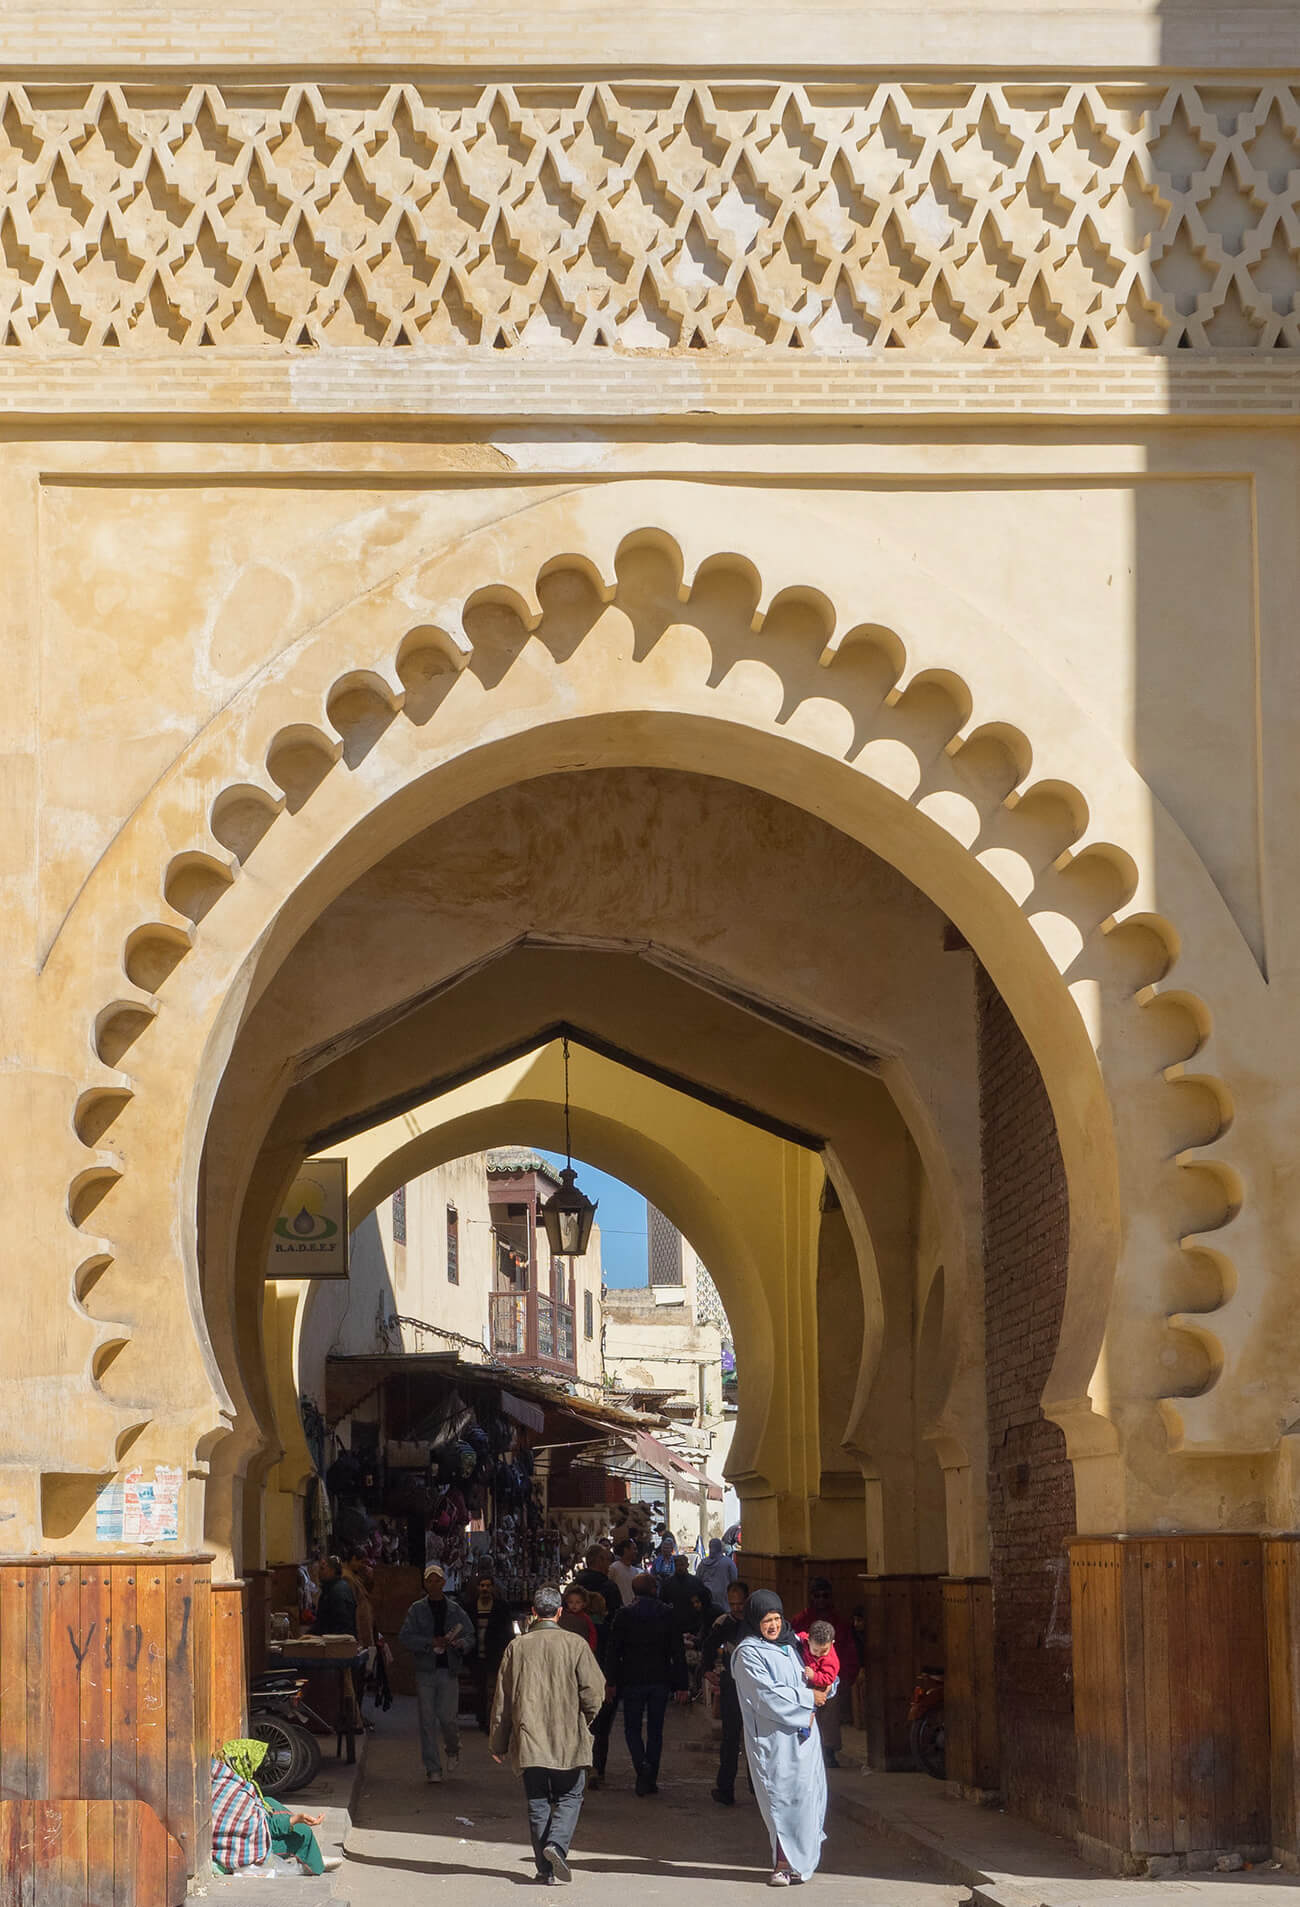 Sahara Desert Tour - What To Do and See in Fez